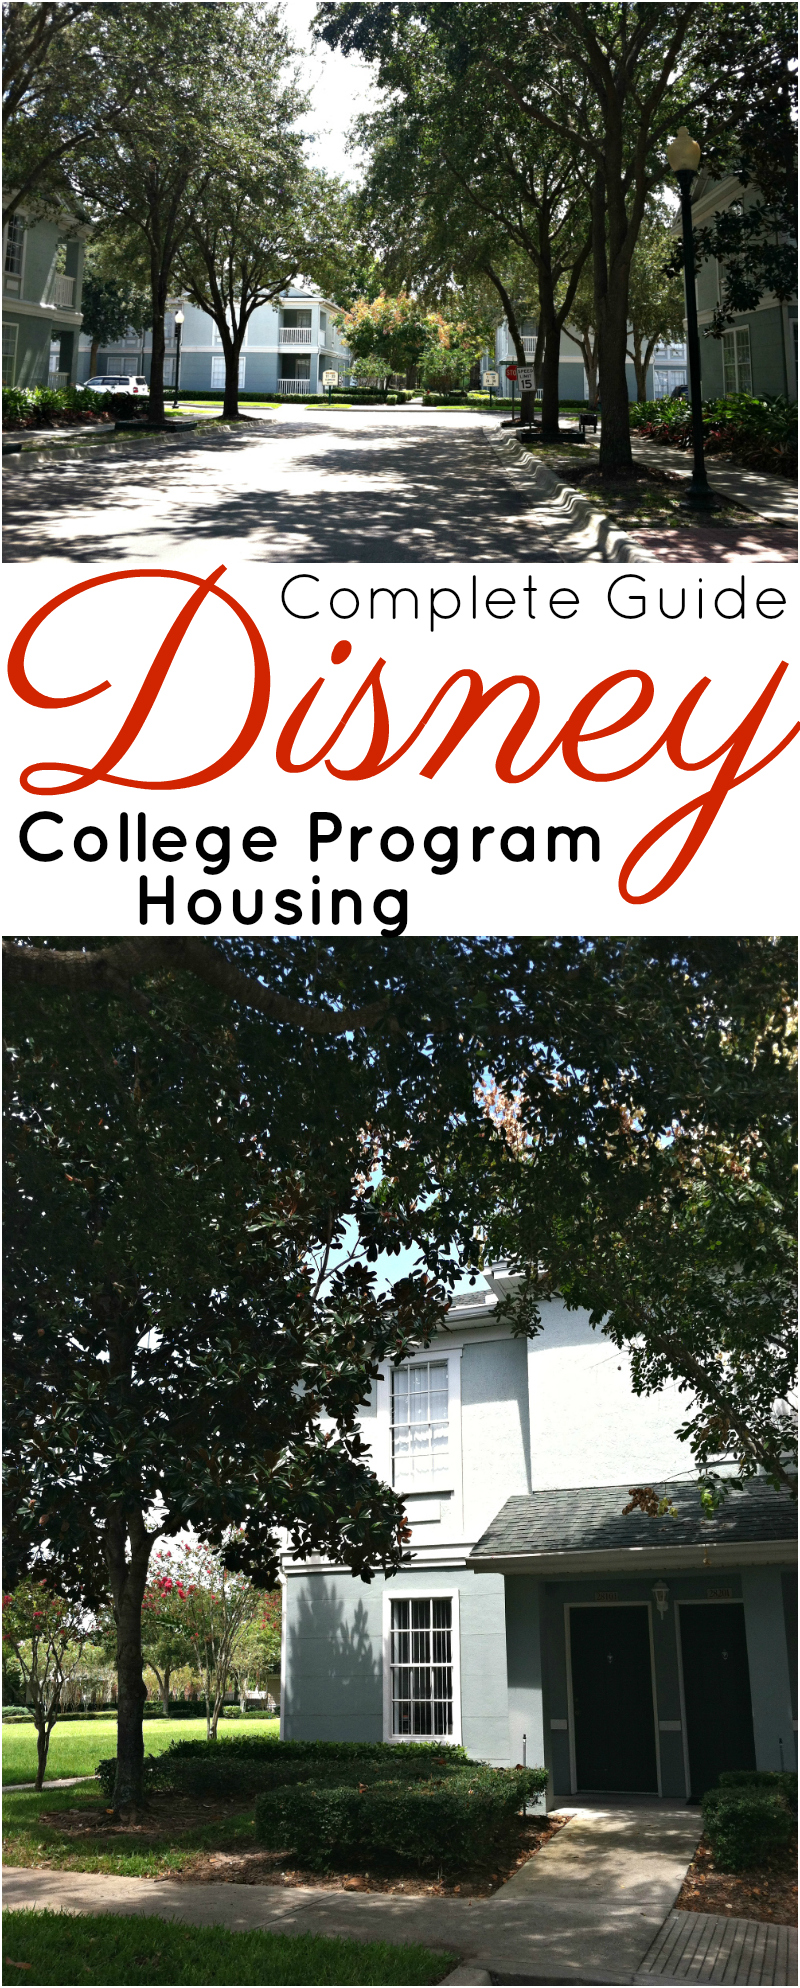 Complete Guide to Disney College Program Housing